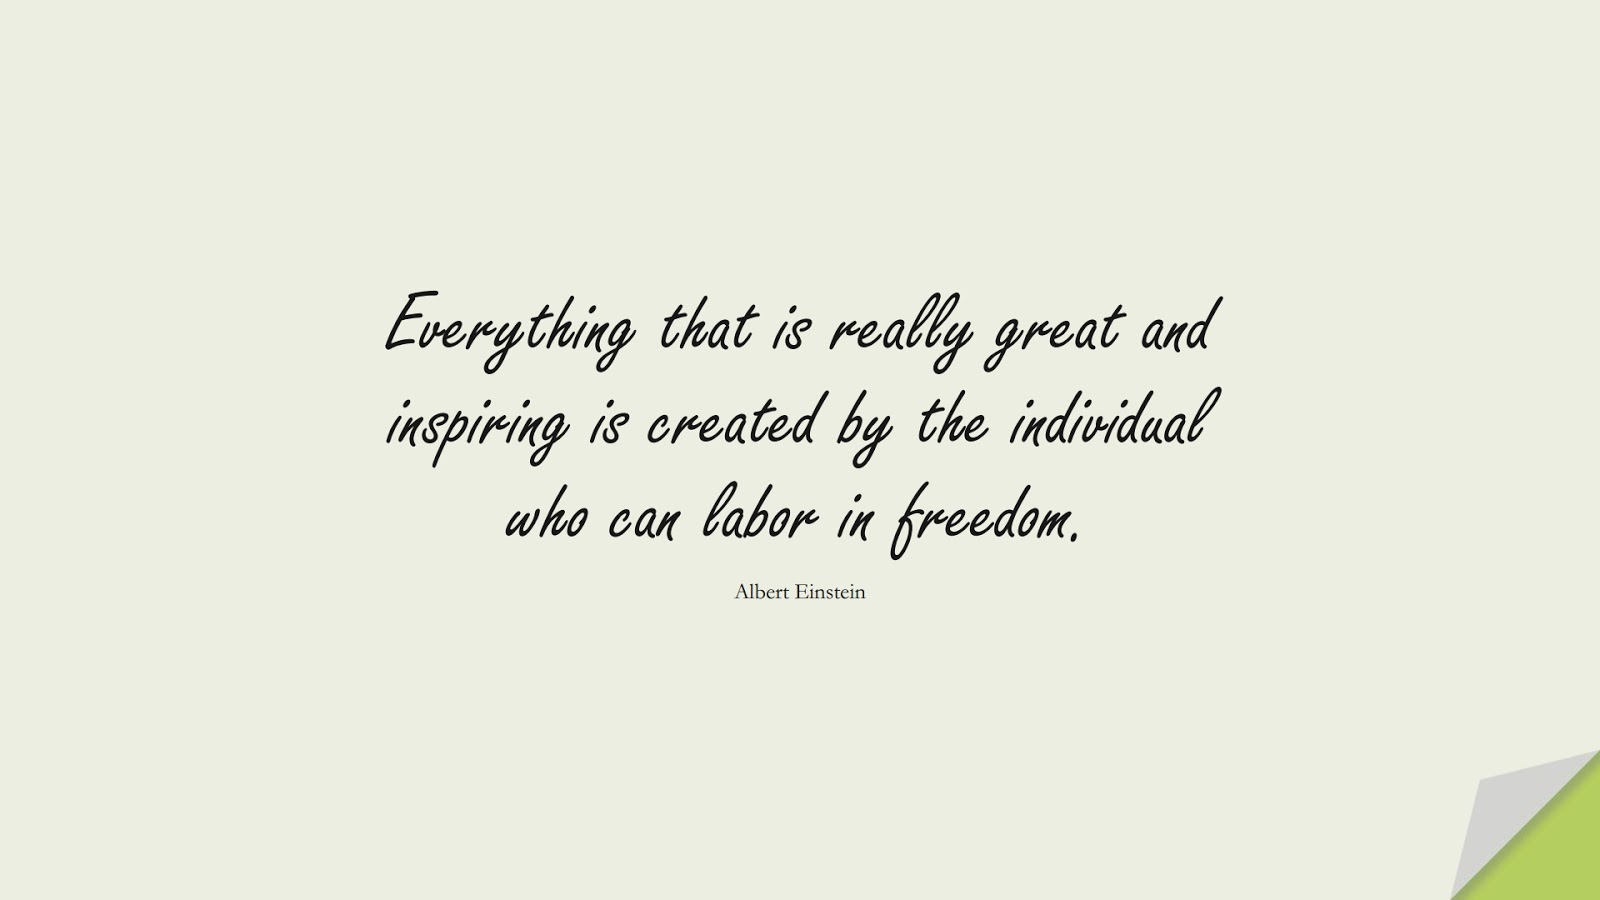 Everything that is really great and inspiring is created by the individual who can labor in freedom. (Albert Einstein);  #AlbertEnsteinQuotes